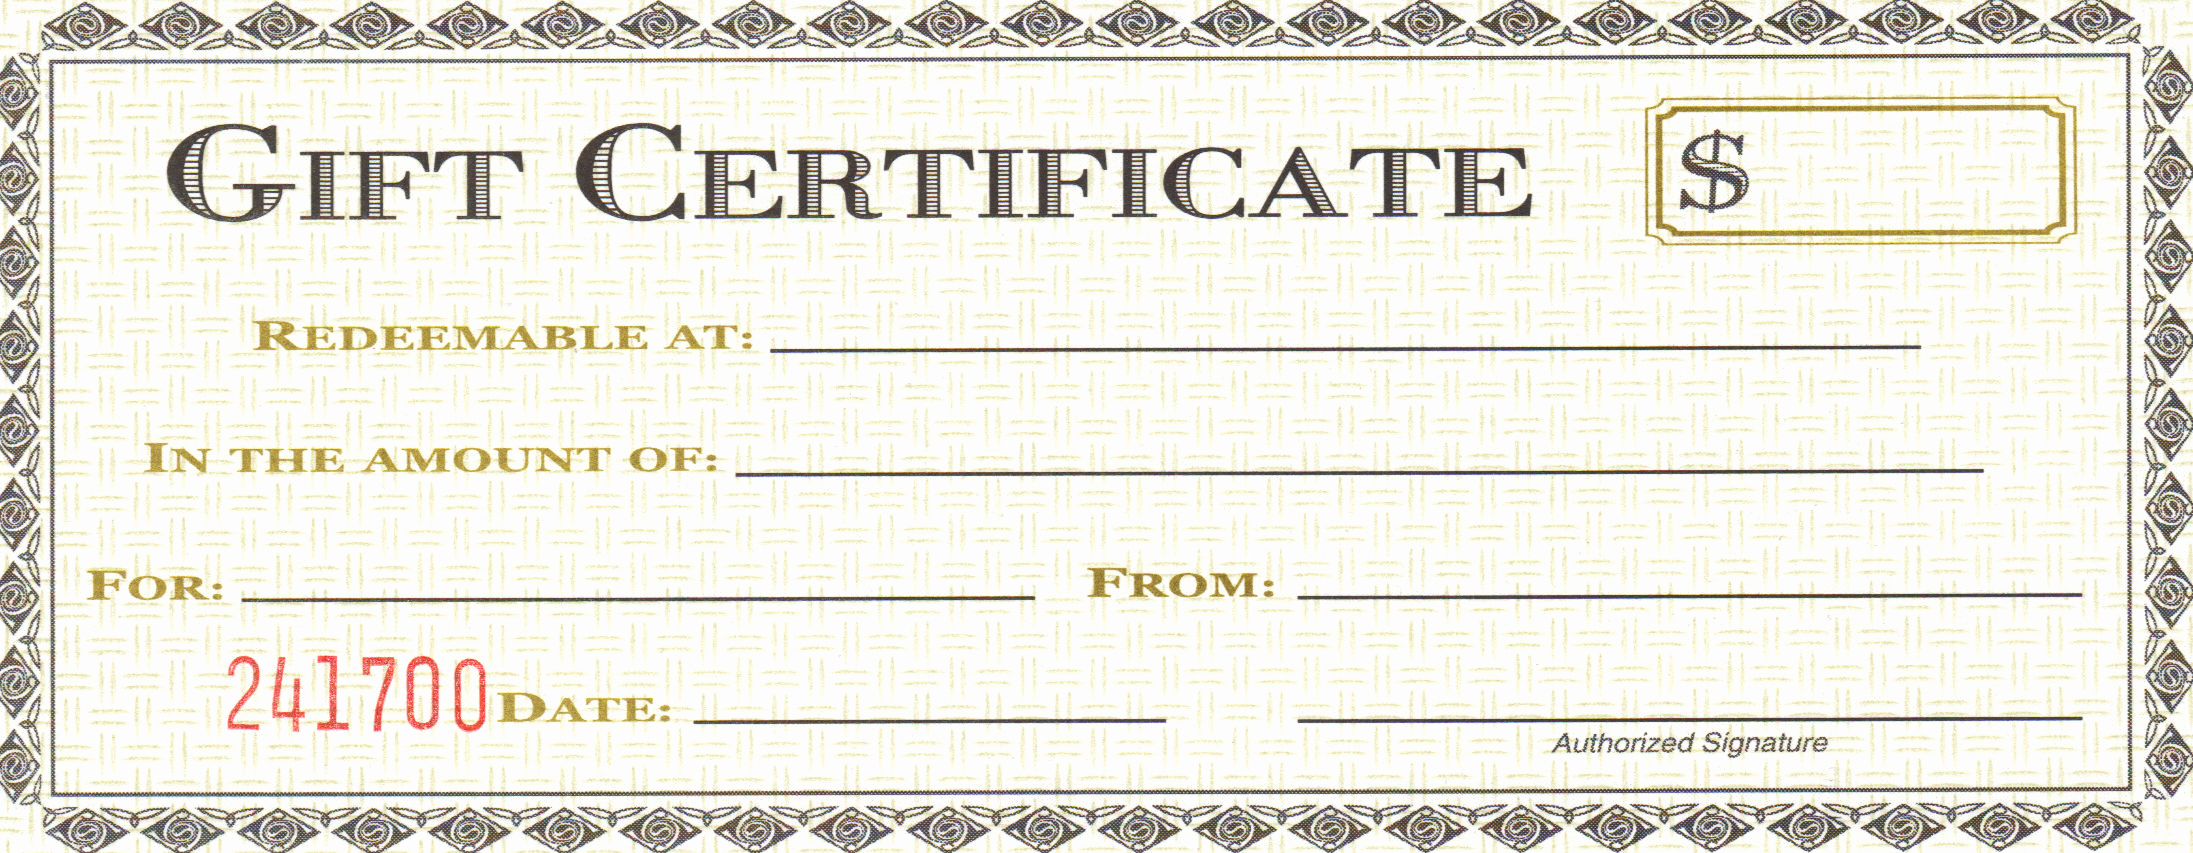 Template for Gift Certificate Best Of 18 Gift Certificate Templates Excel Pdf formats